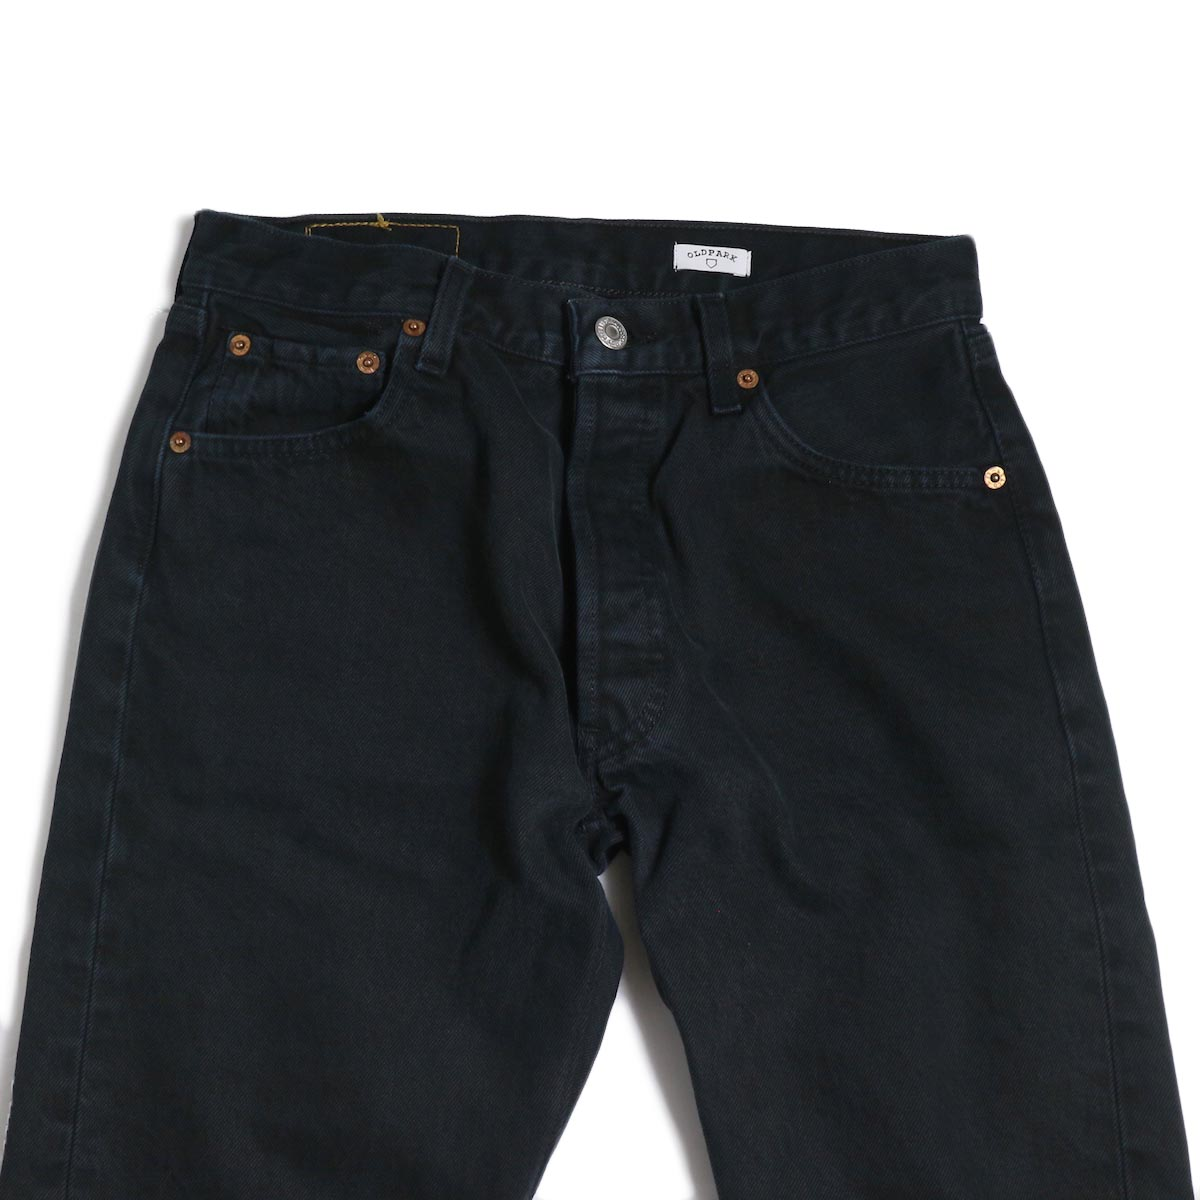 OLD PARK / Back Flare Jeans -Black Ssize (F) ウエスト